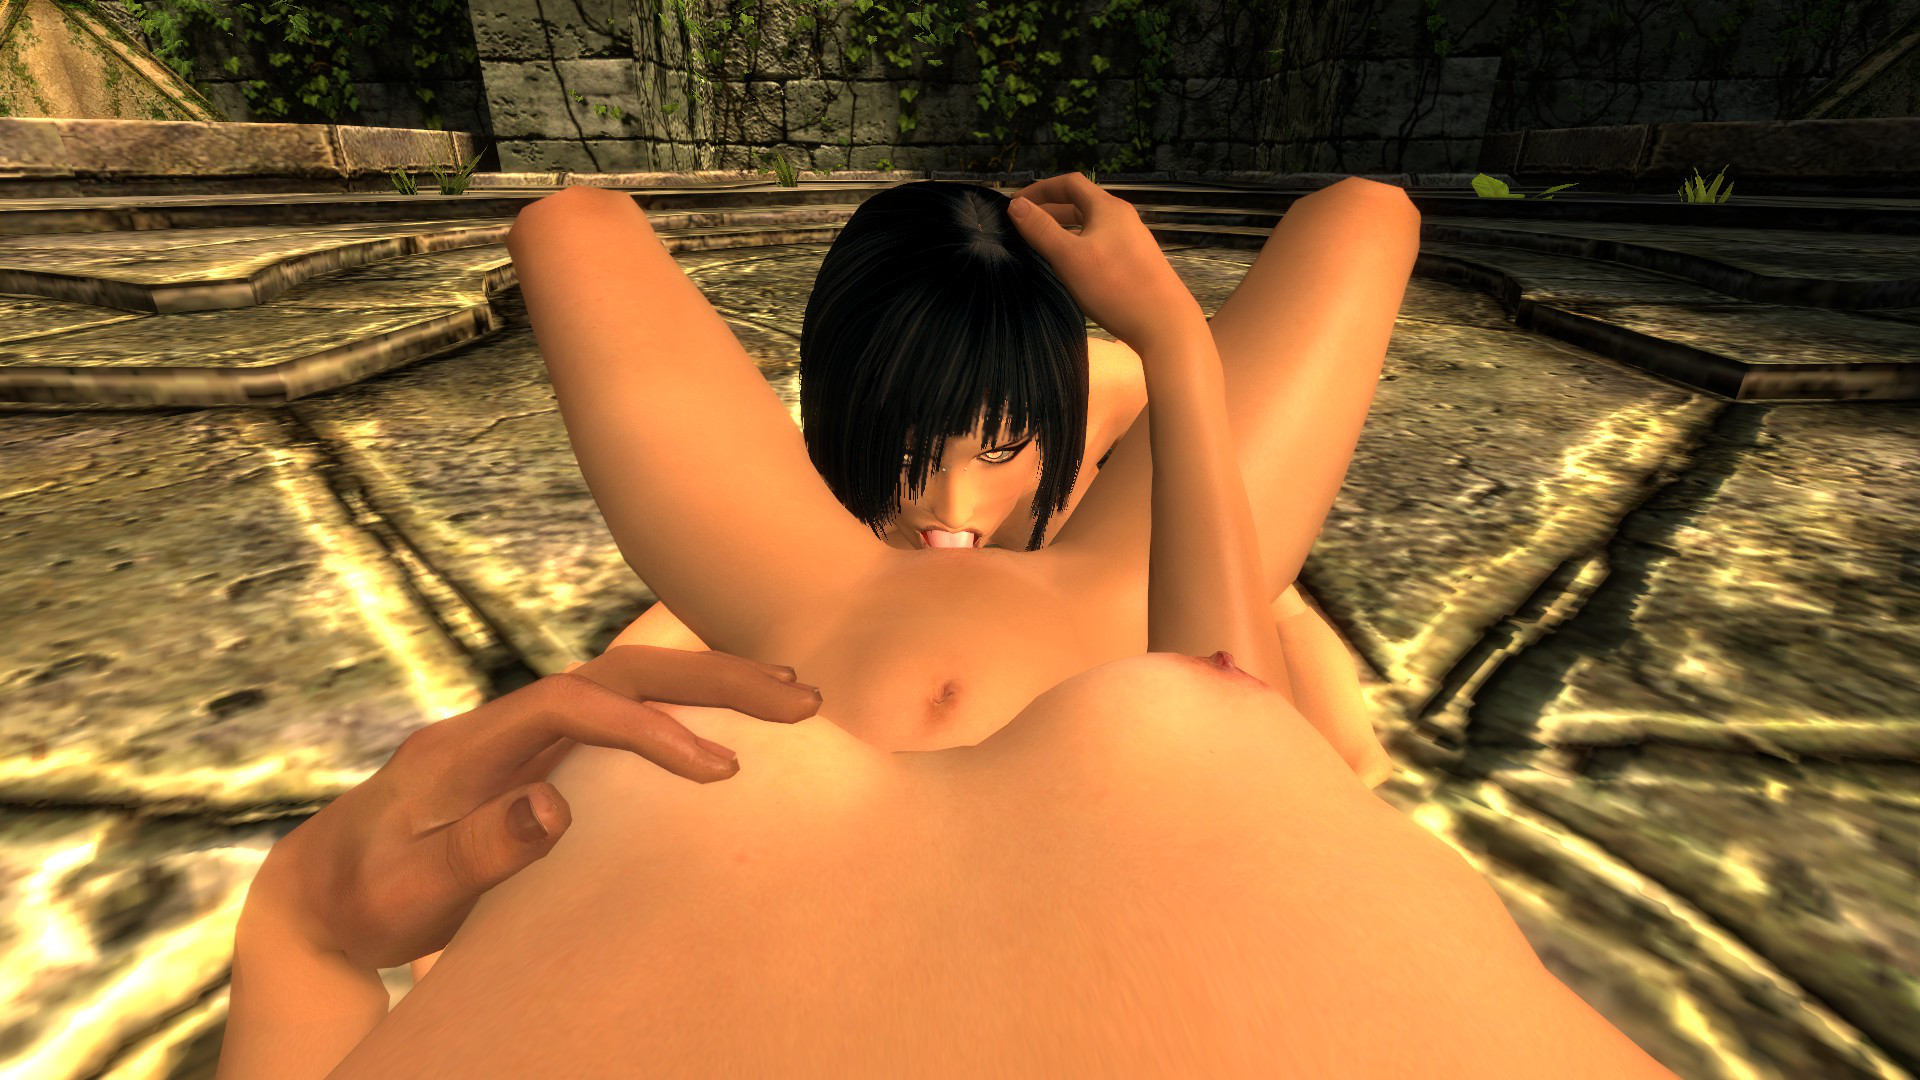 Left 4 dead zoey rule 34 nude scene